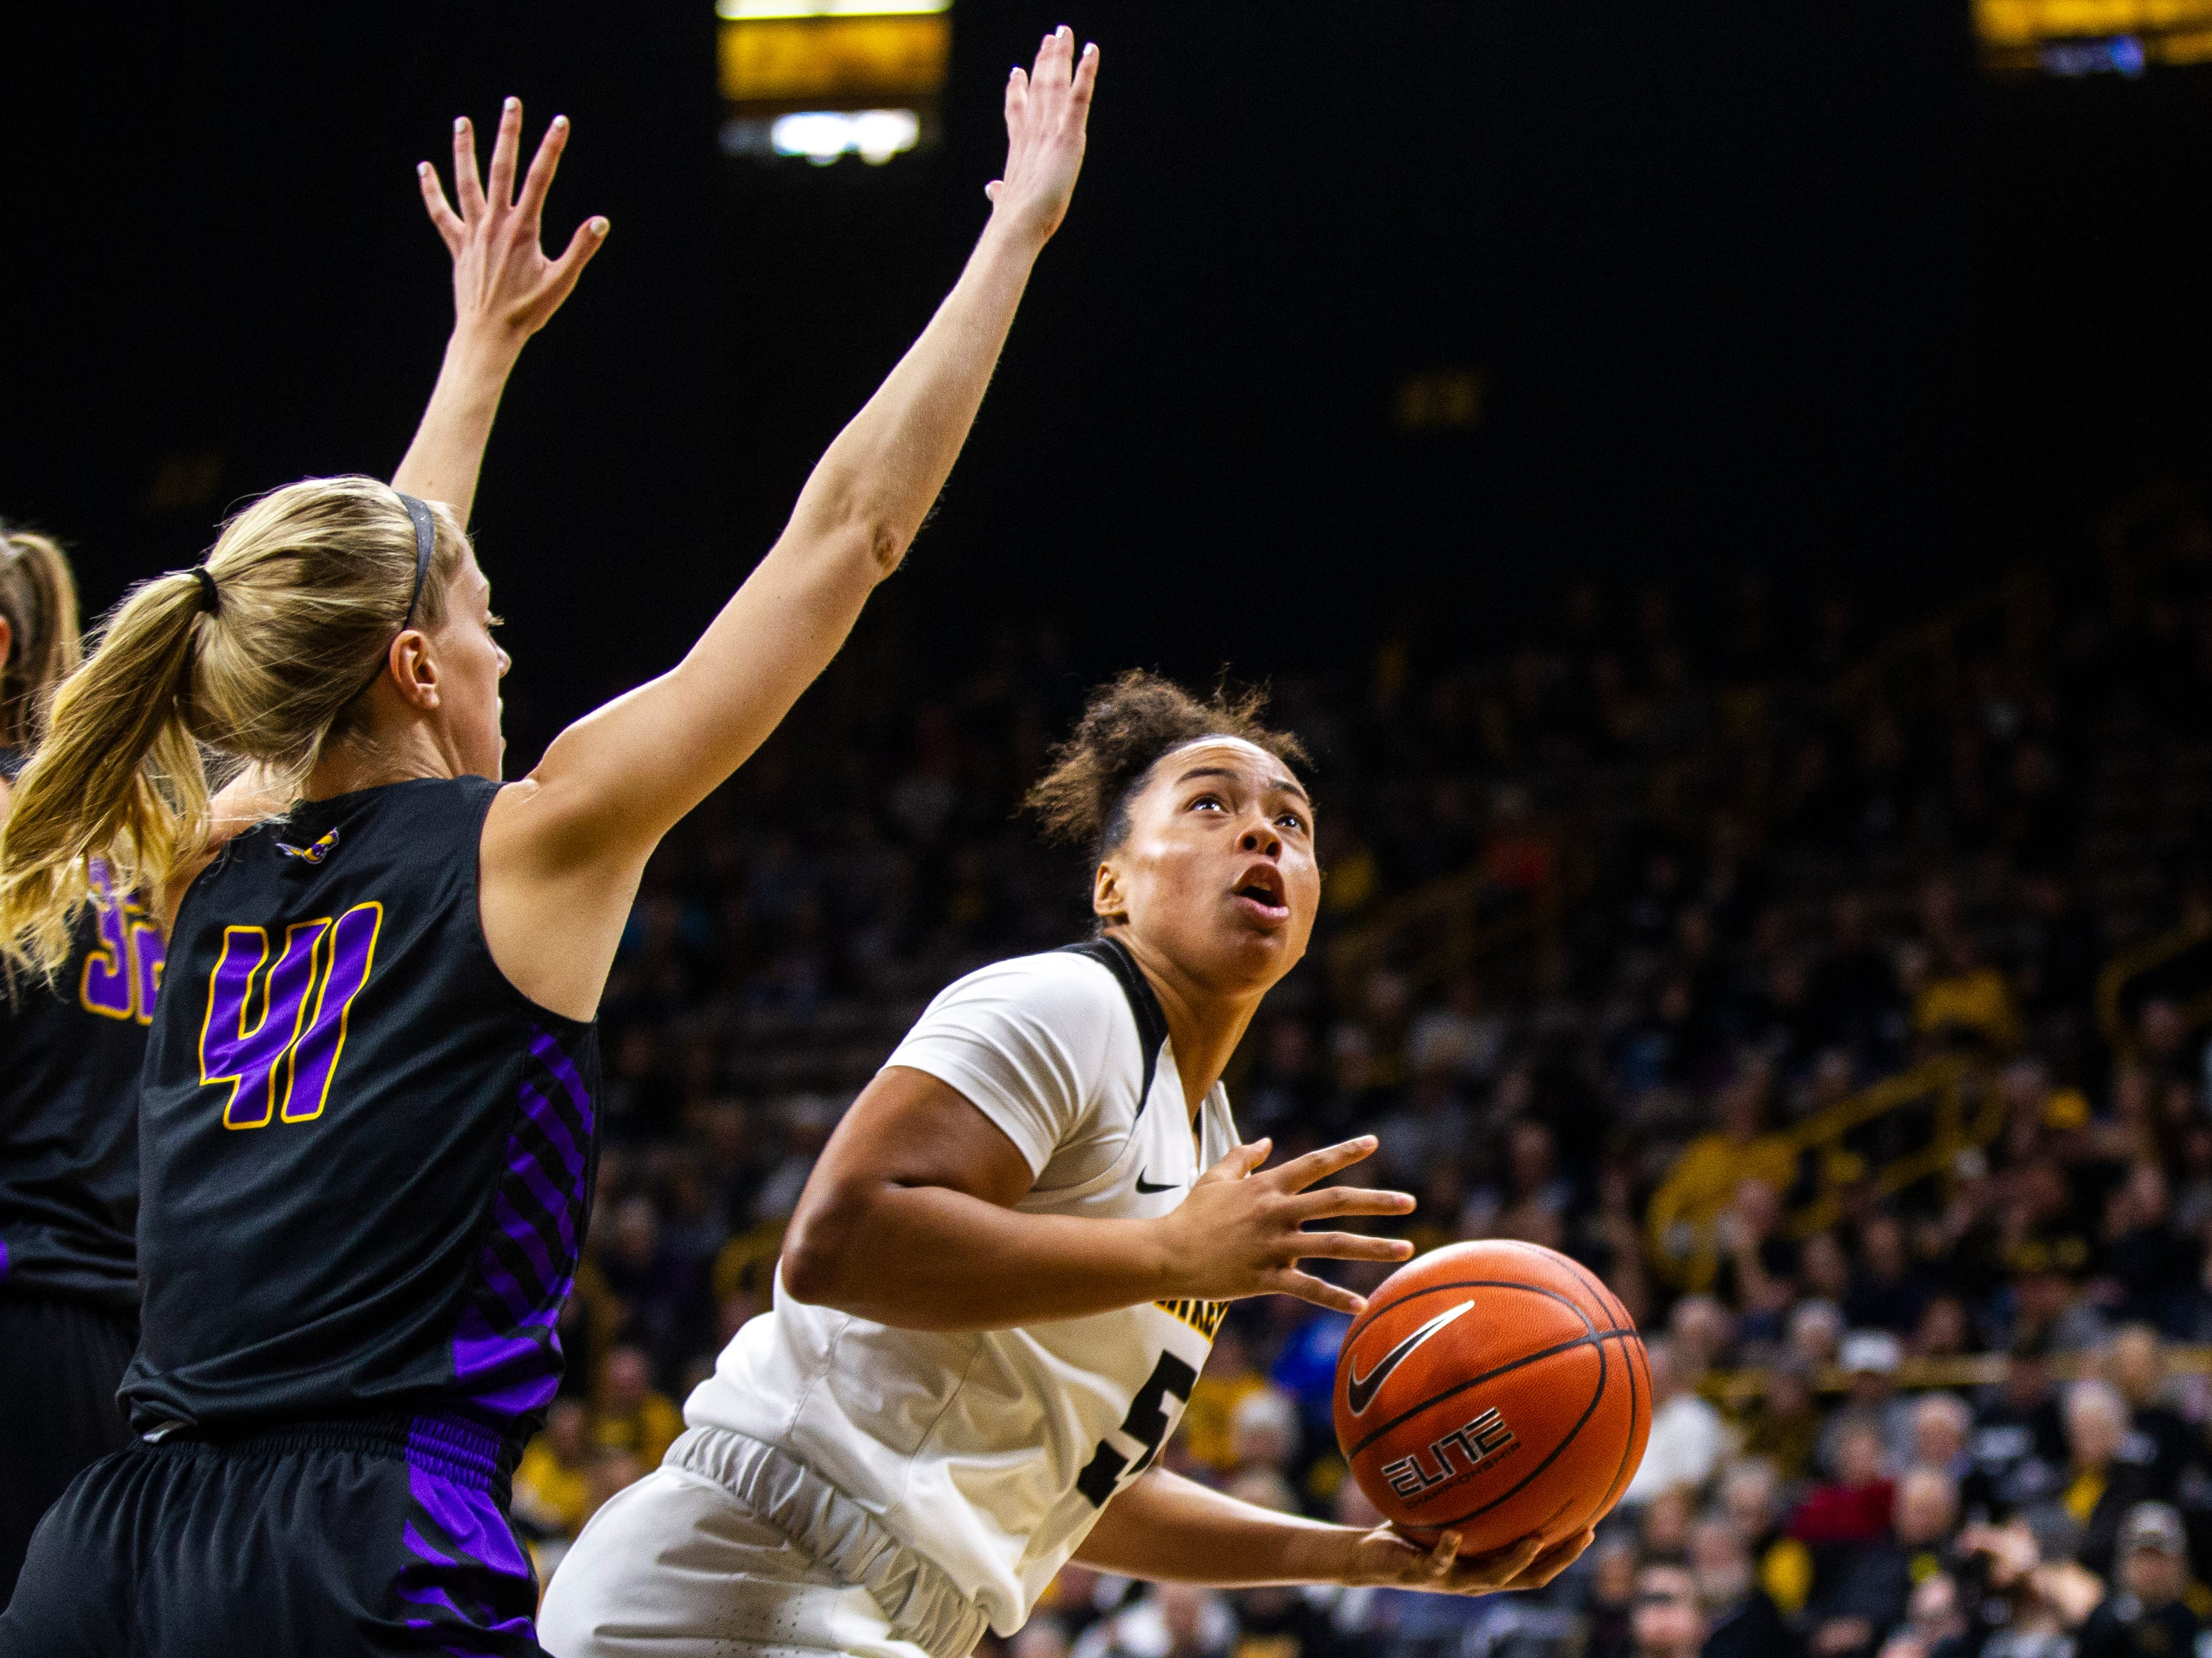 Iowa guard Alexis Sevillian (5) attempts a basket past Northern Iowa guard Abby Gerrits (41) during a NCAA women's basketball game on Sunday, Dec. 16, 2018, at Carver-Hawkeye Arena in Iowa City.